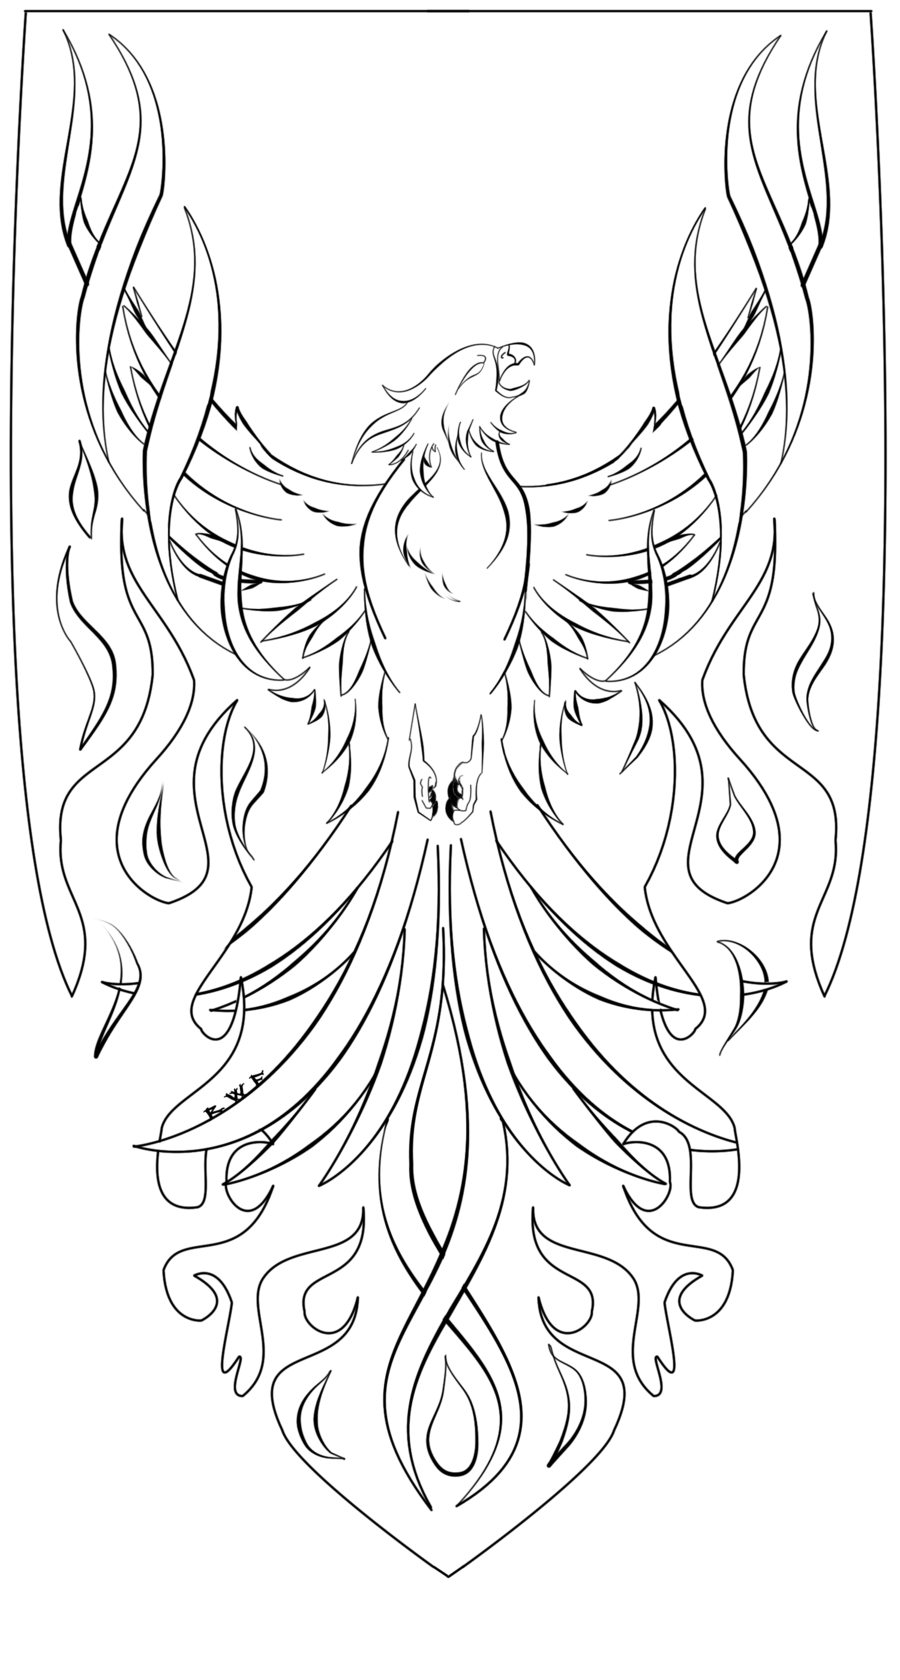 phoenix coloring pages phoenix coloring pages to download and print for free phoenix coloring pages